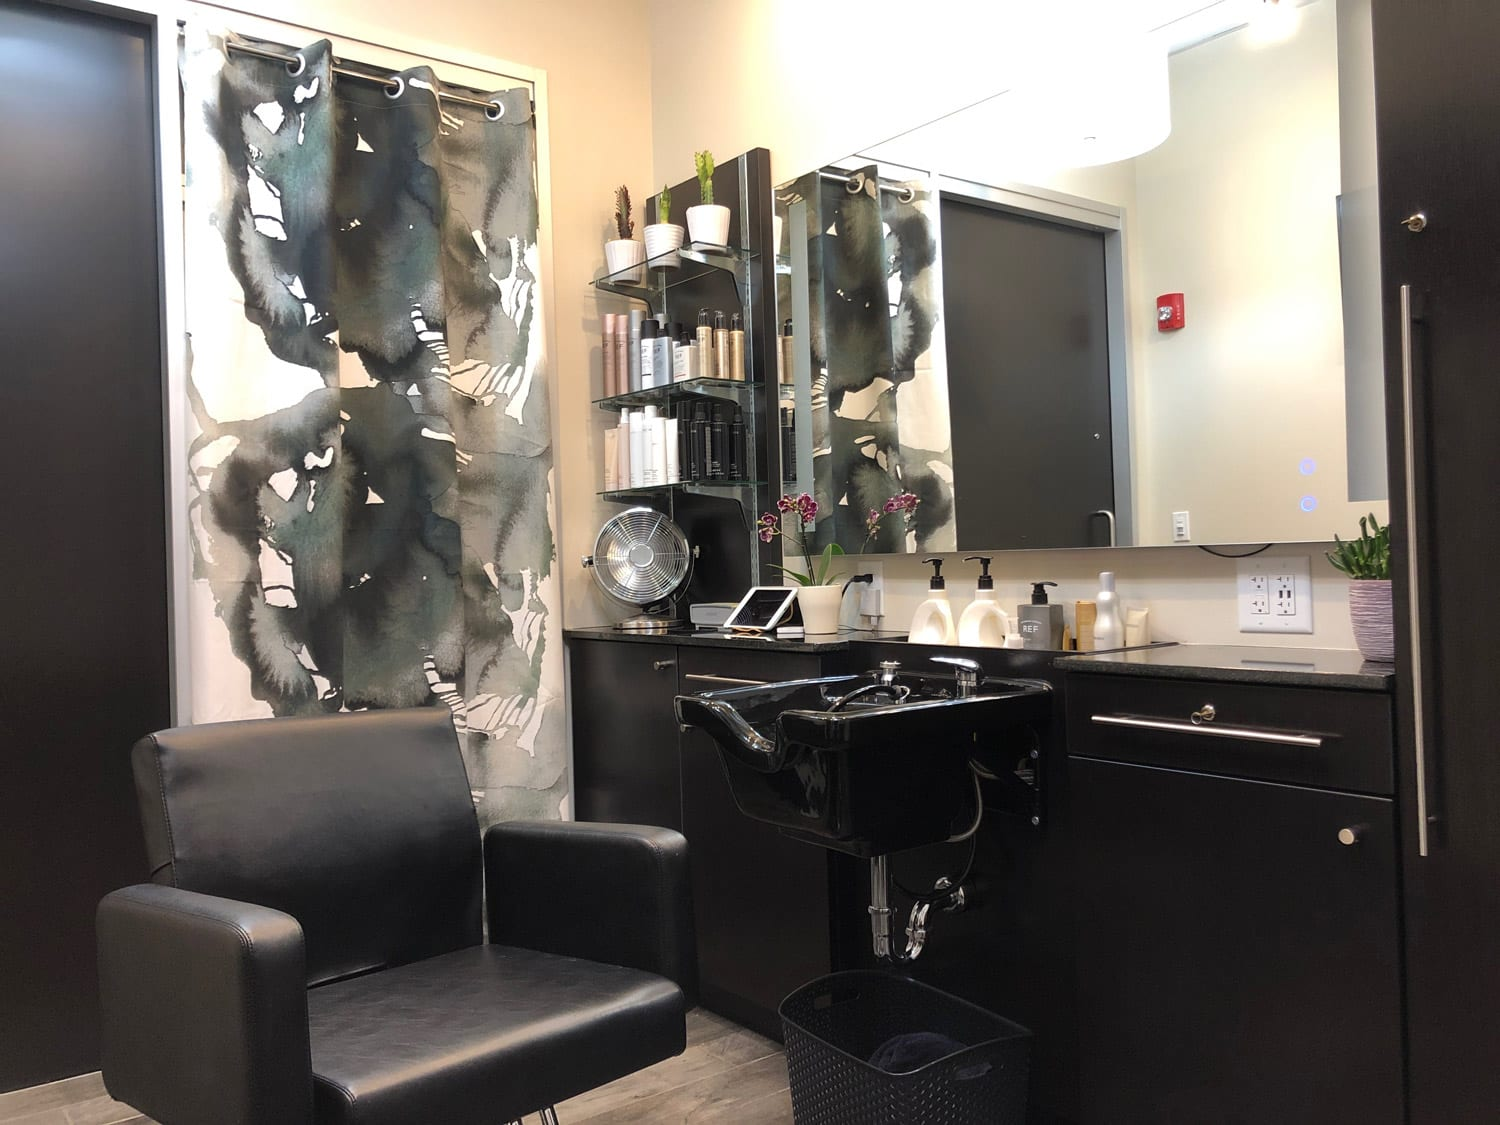 boca raton florida hair studio miami hair salon profesional hair stylist